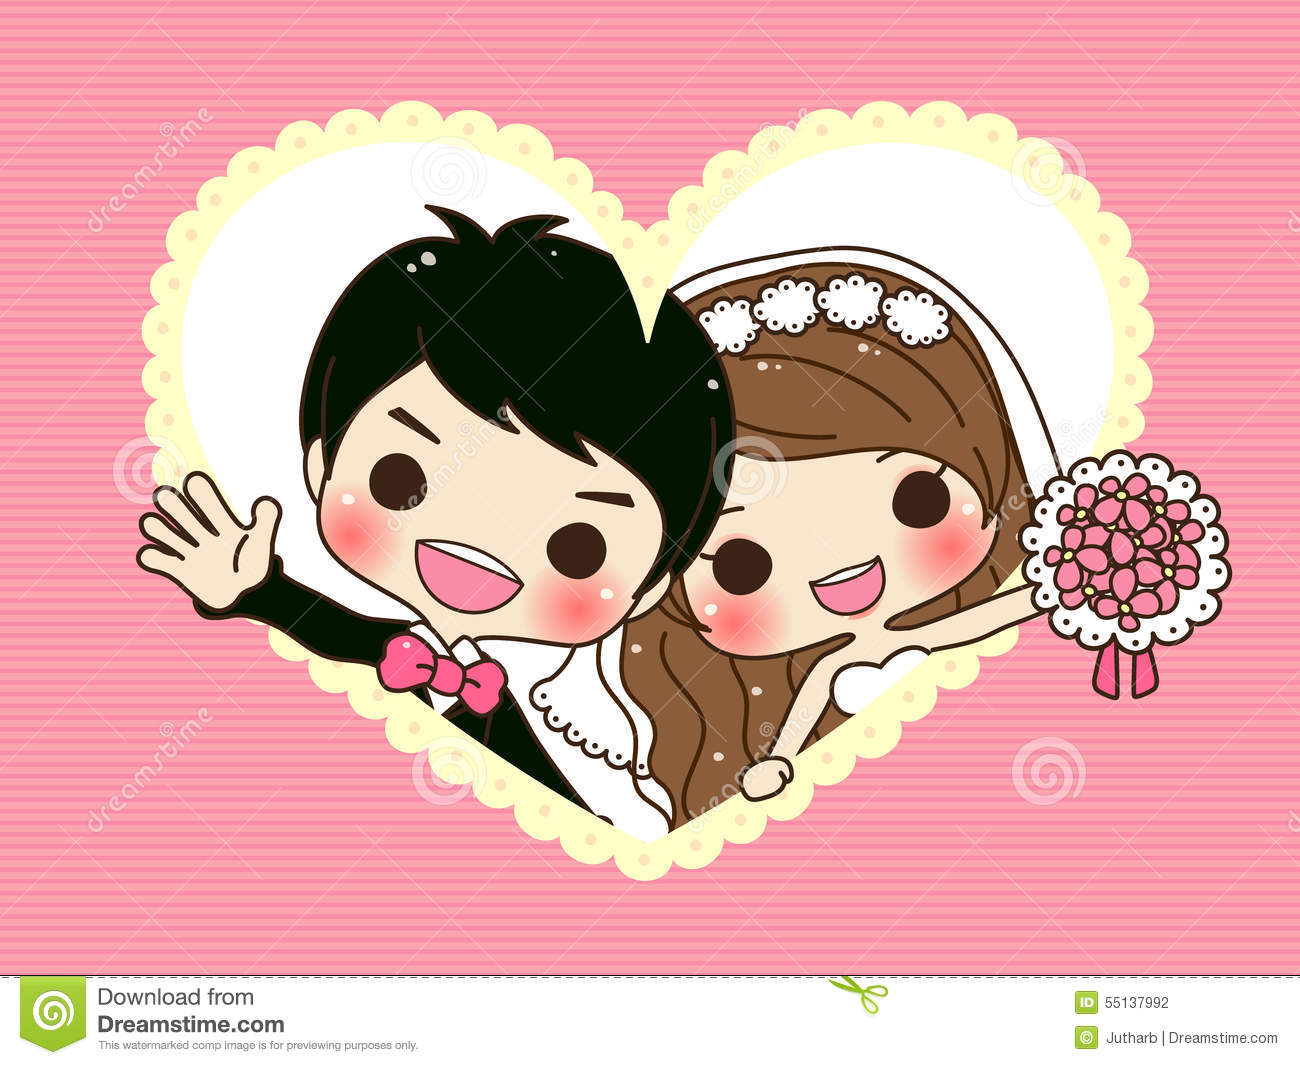 Cute Couple Wedding Stock Vector - Image: 55137992